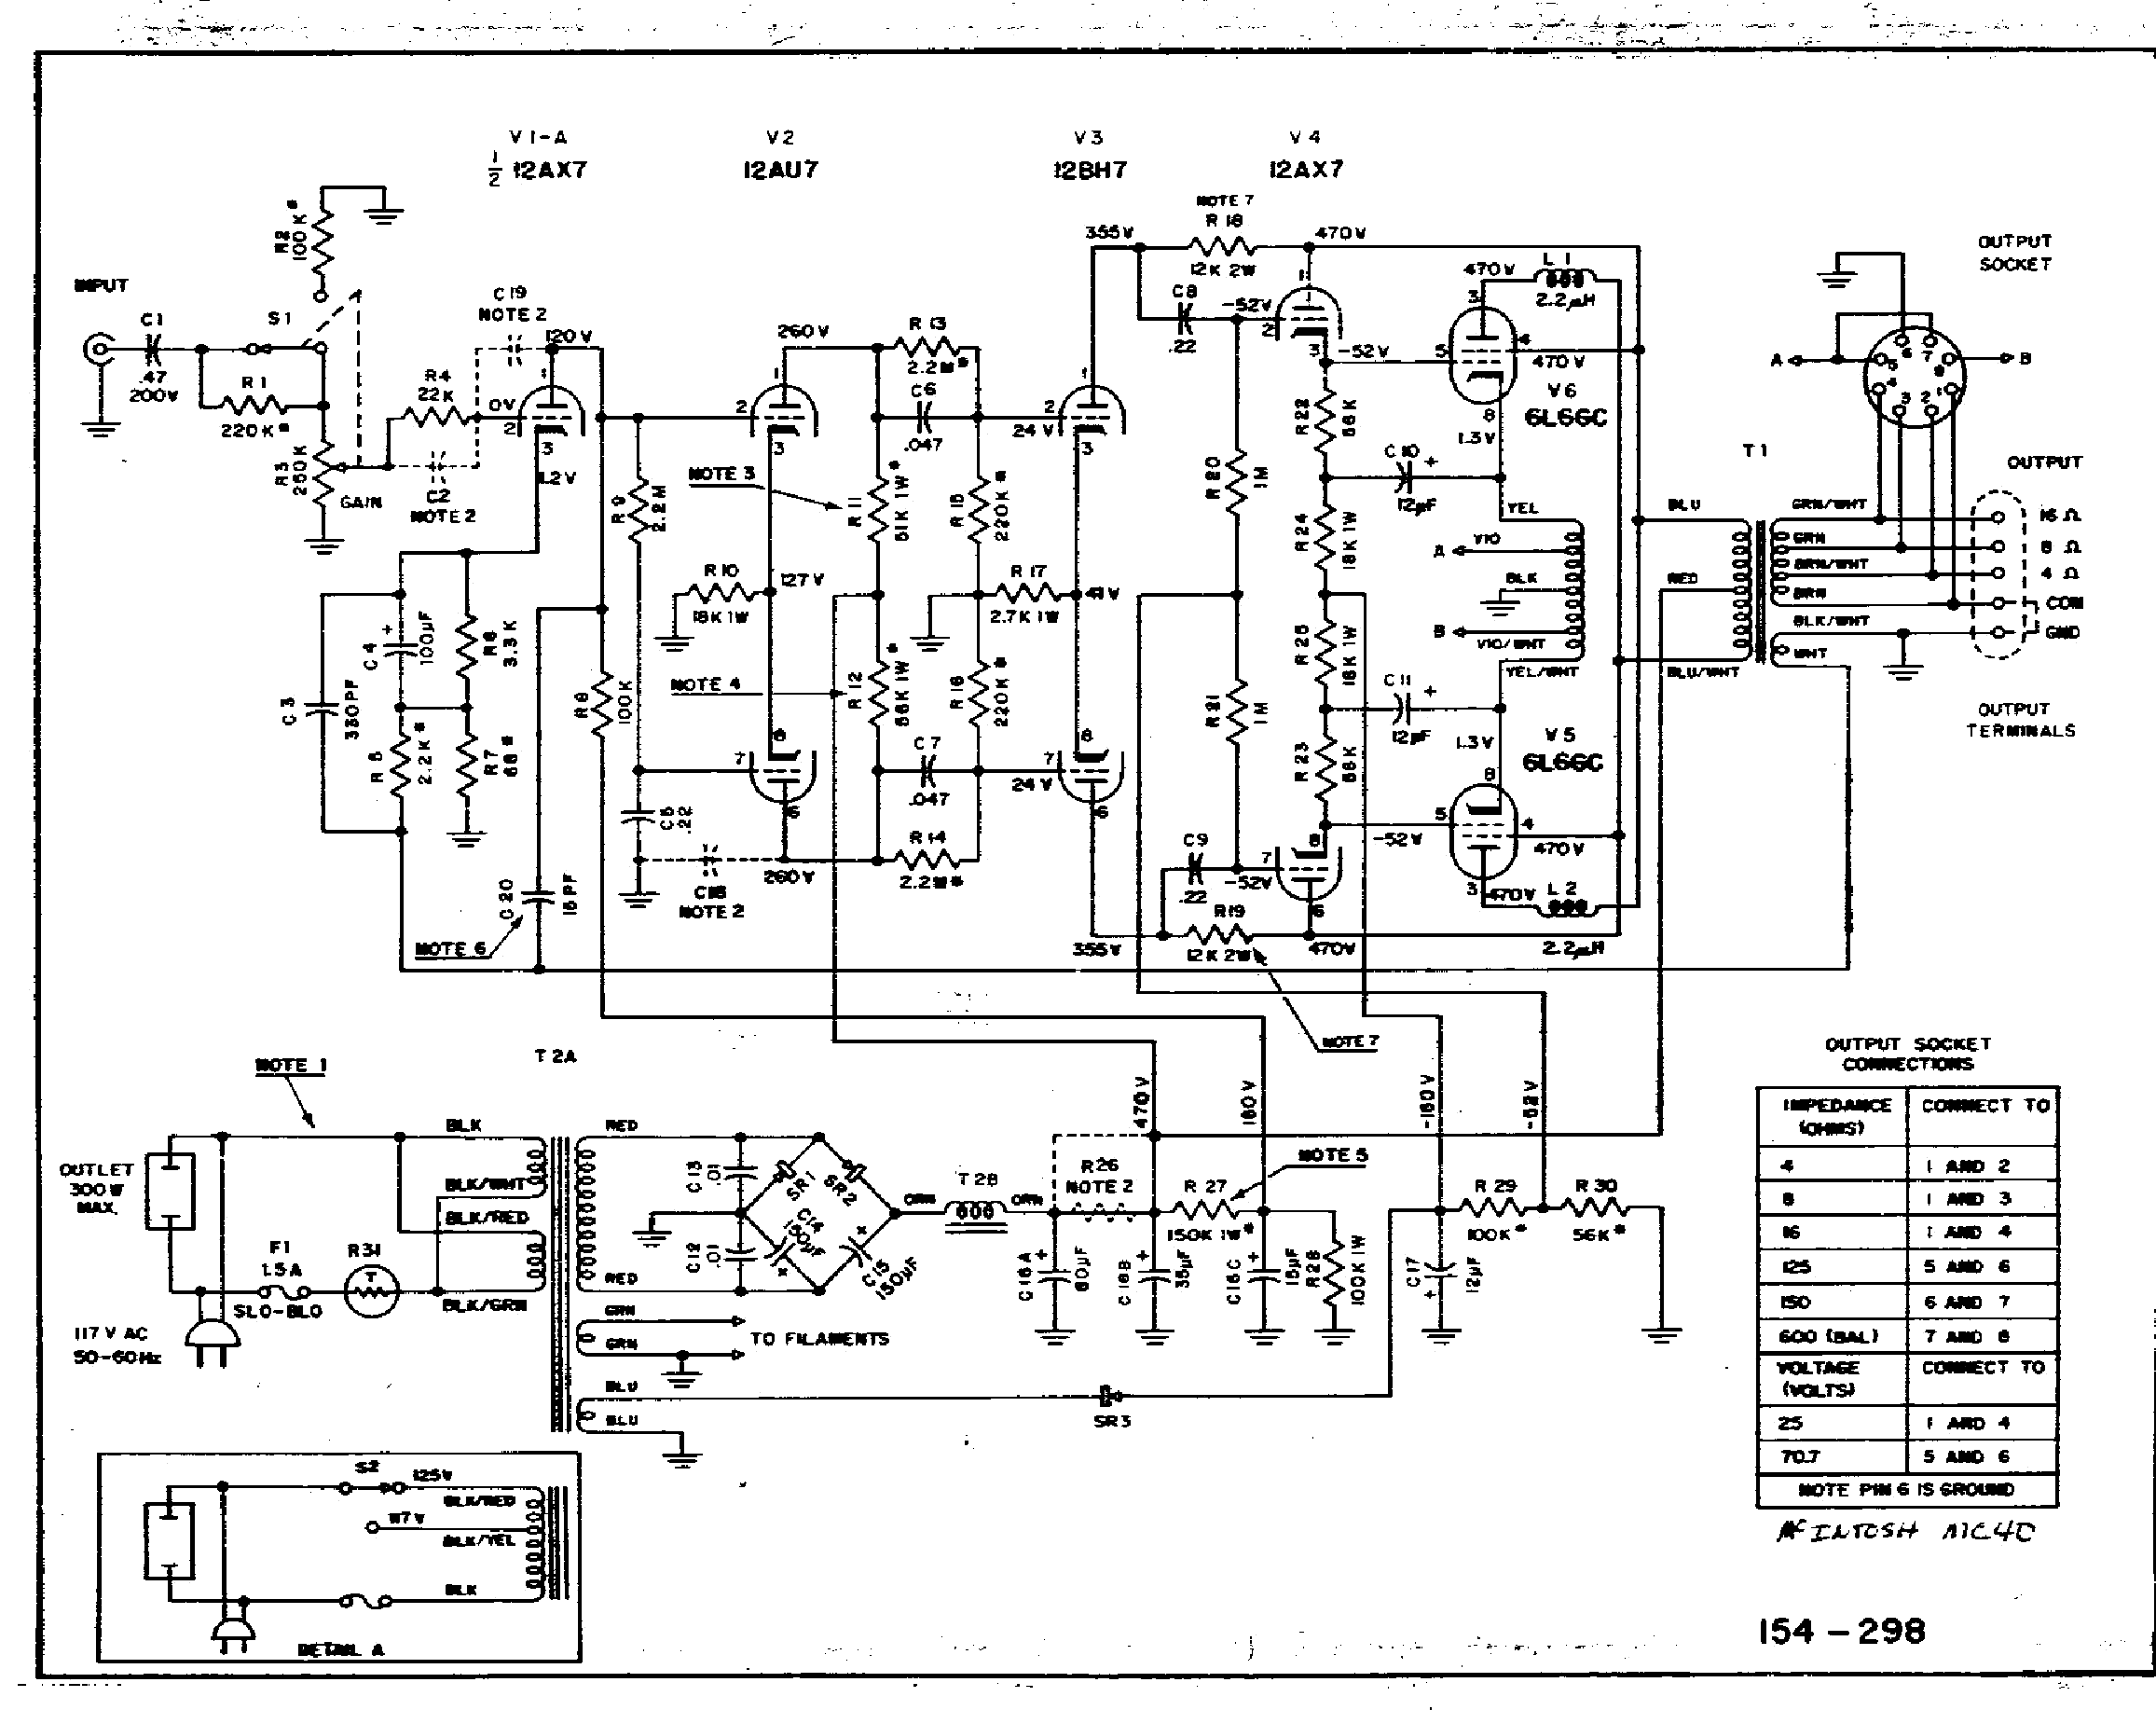 Wiring Diagram Mc 2100 Treadmill Treadmill Motor Diagram